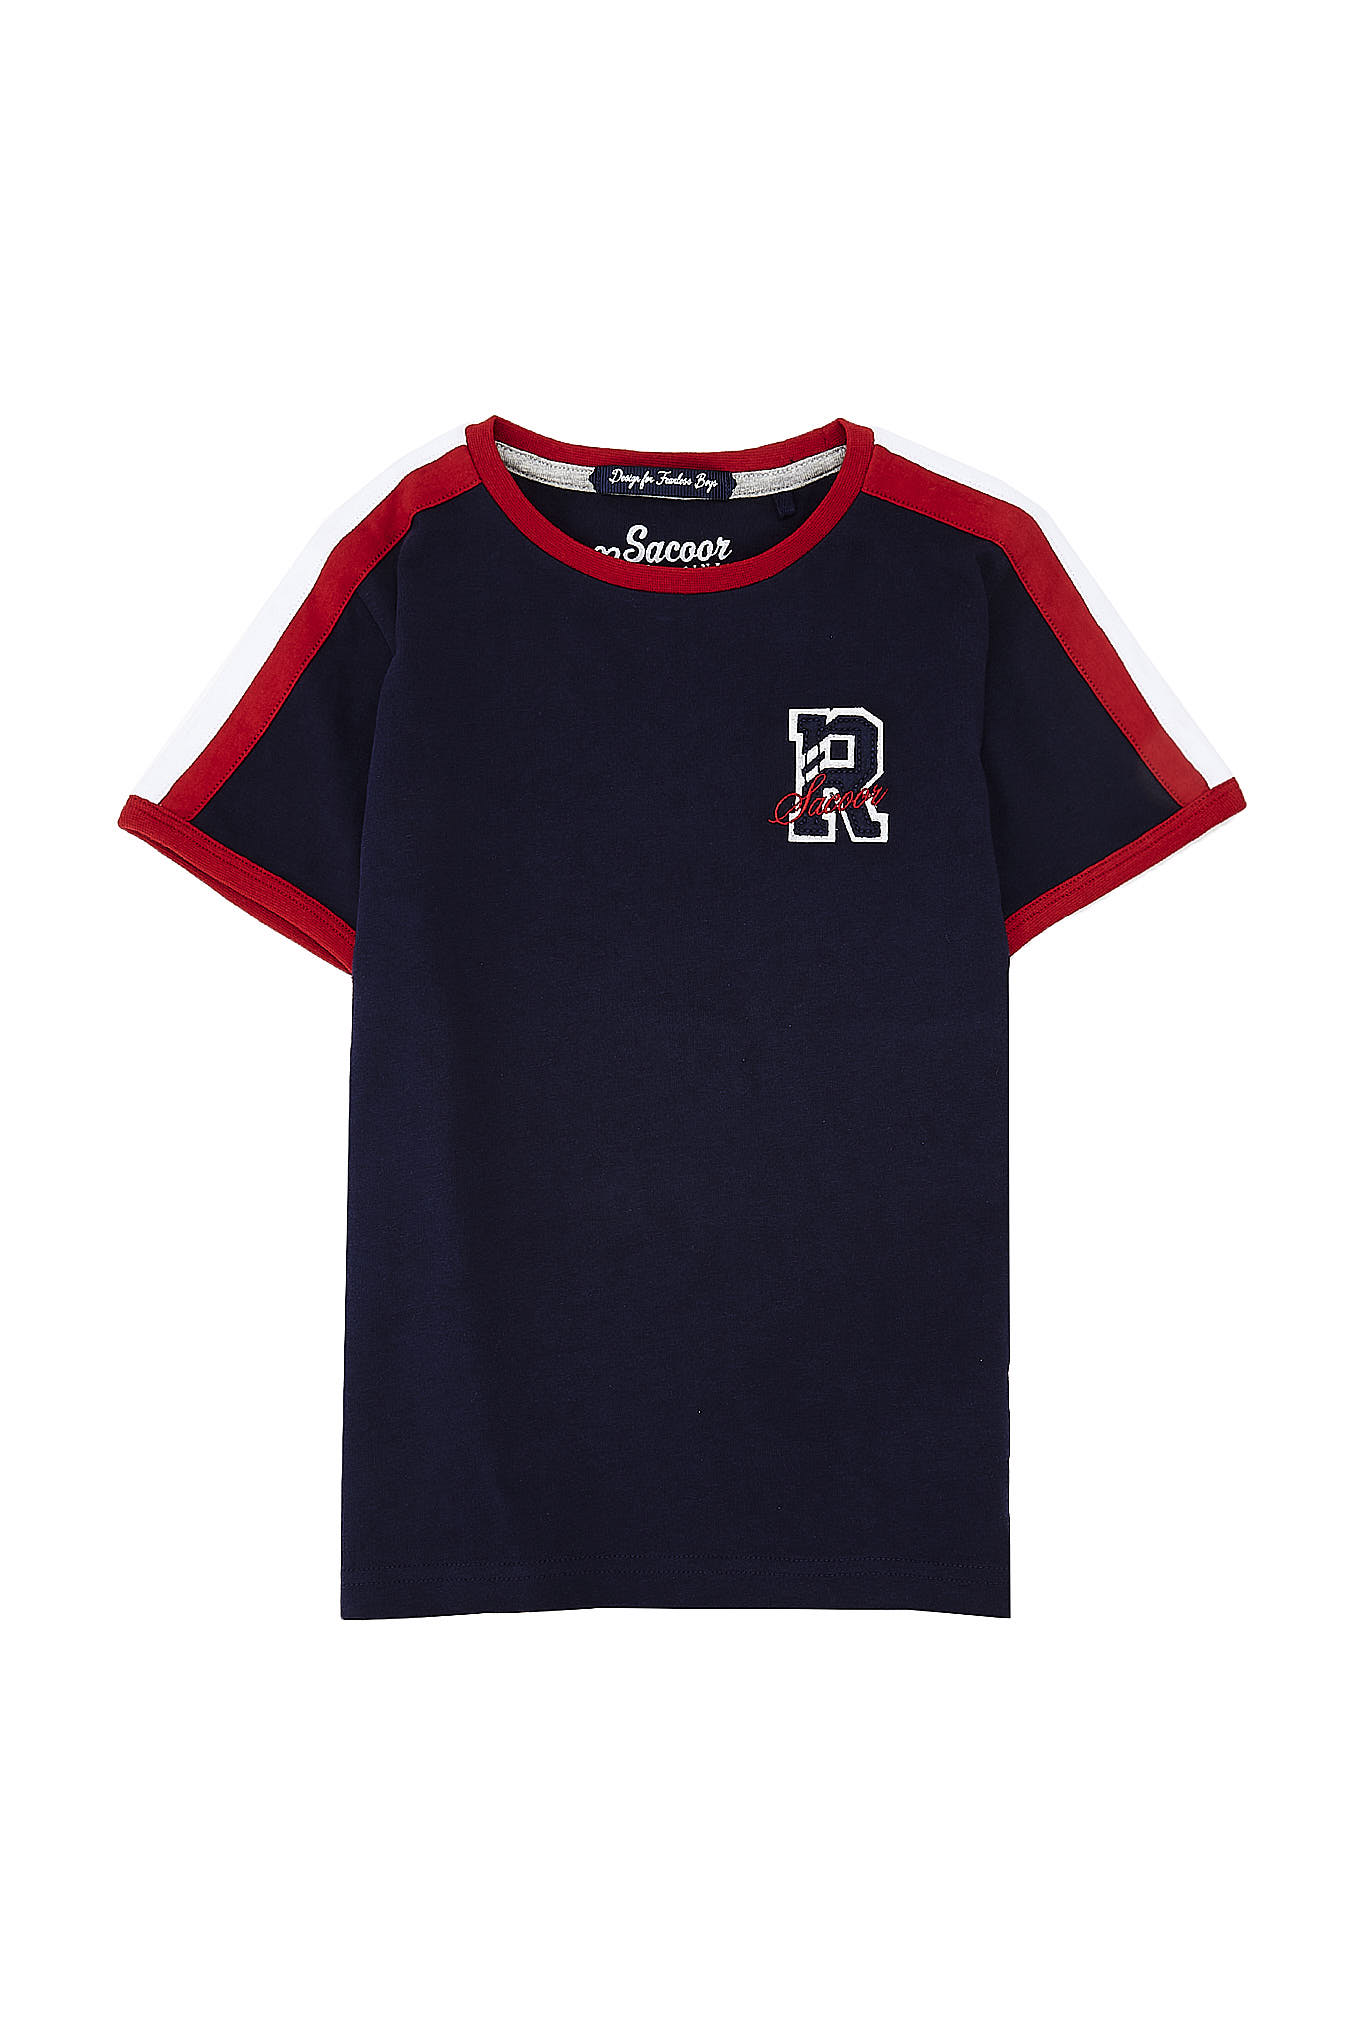 T-Shirt Dark Blue Sport Boy